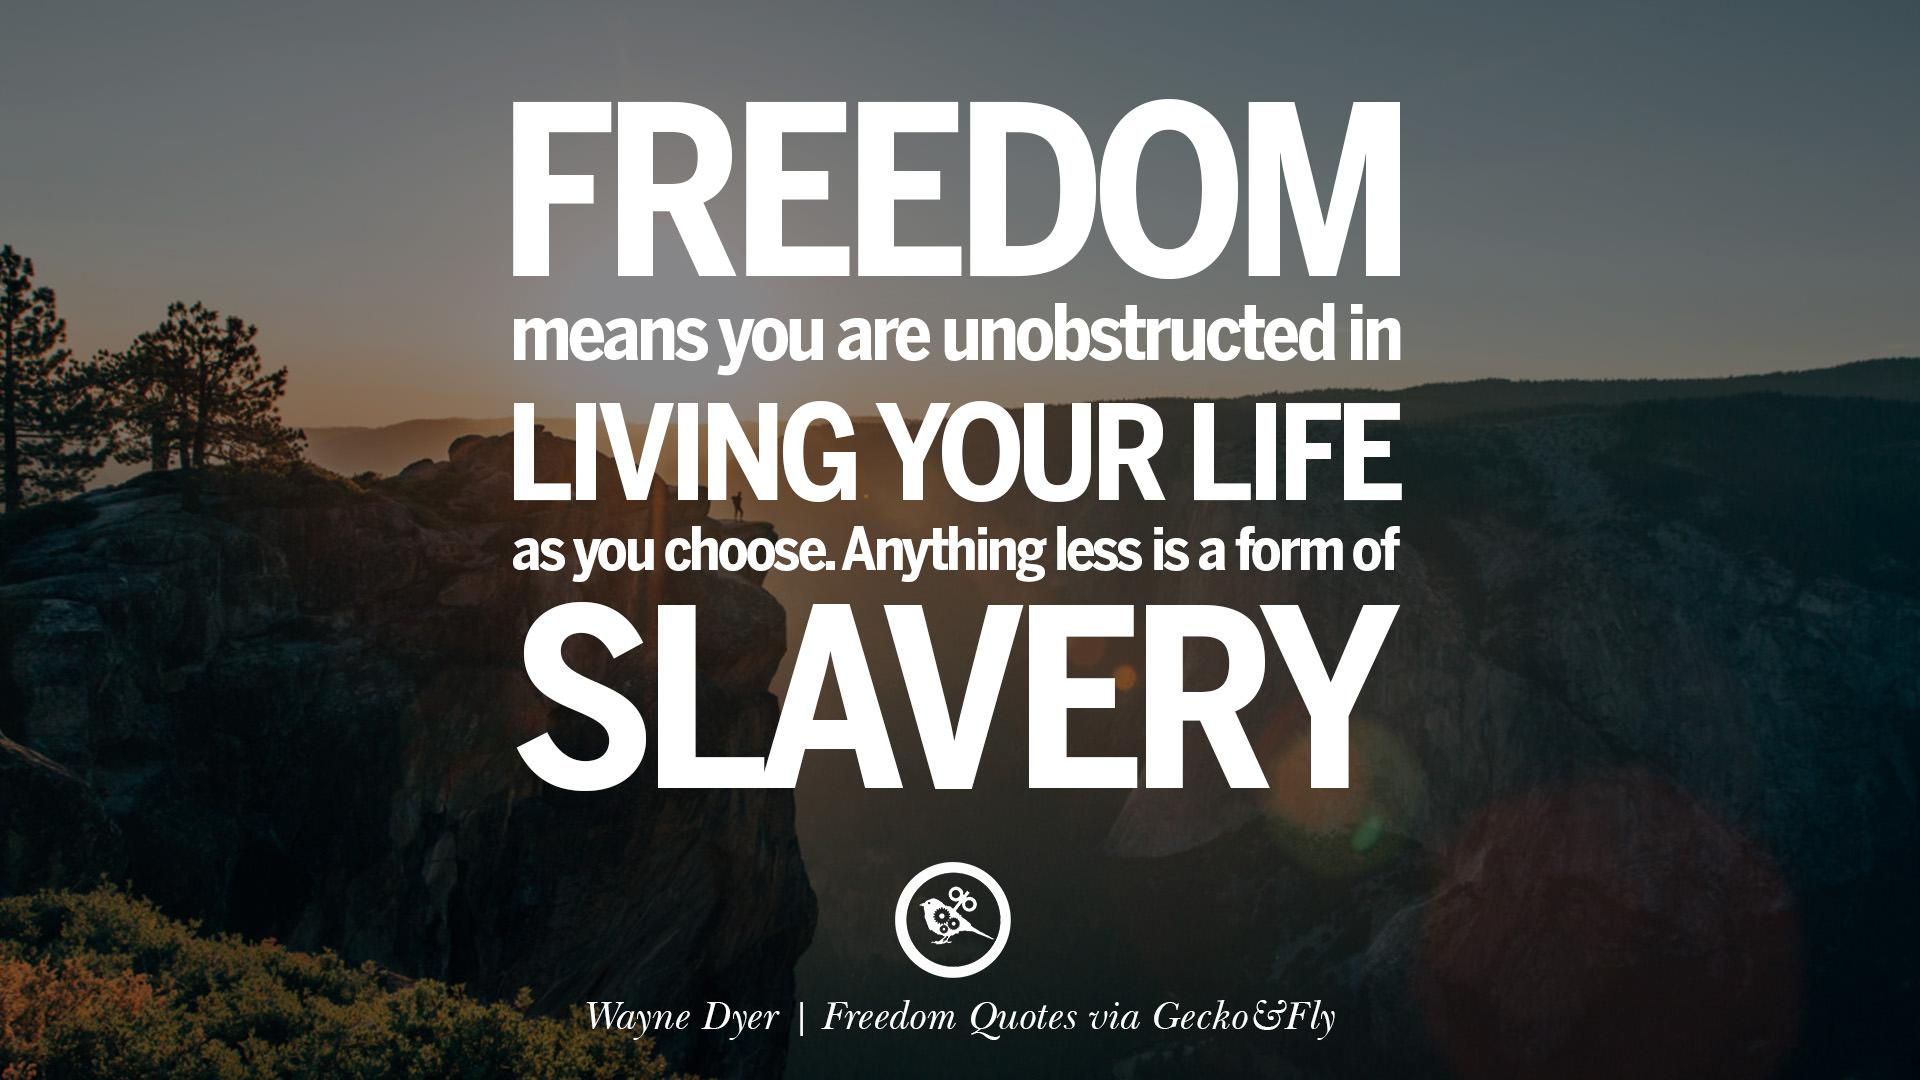 FREEDOM means you are unobstructed in LIVING YOUR LIFE as you choose. Anything less is a form of SLAVERY Wayne Dyer | Freedom Quotes via Gee/£0 ES'Fly https://inspirational.ly